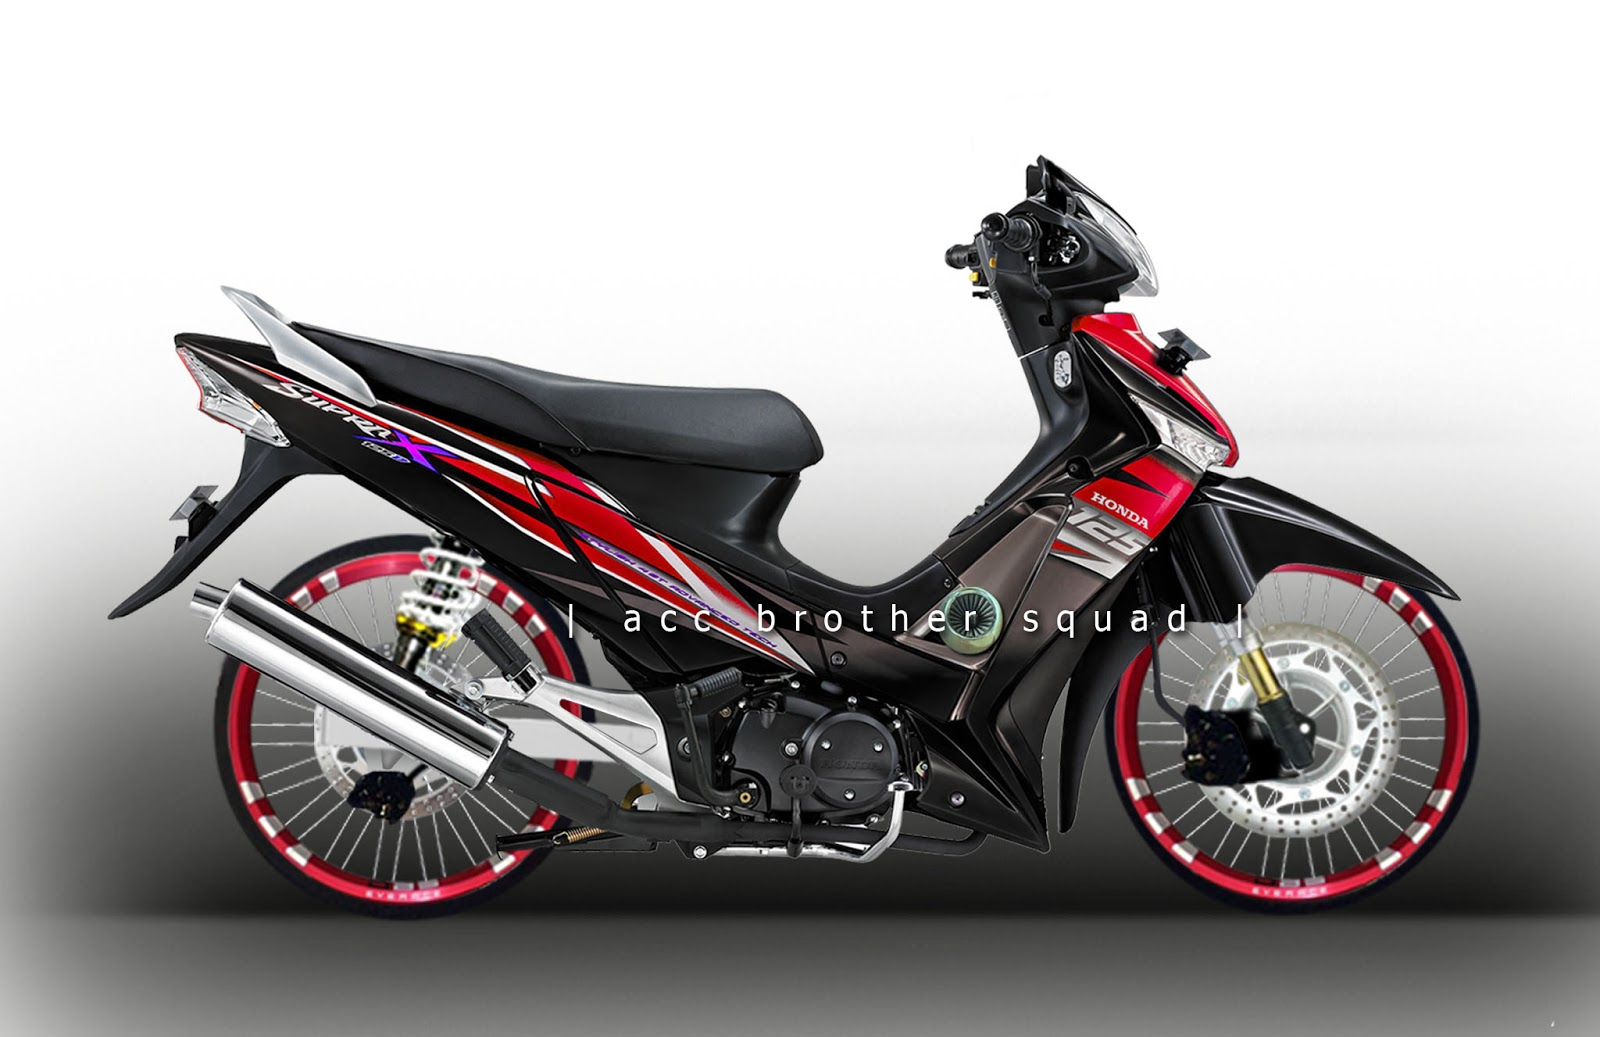 Gambar Modifikasi Supra X 125 Sederhana Terbaru Model Road Race